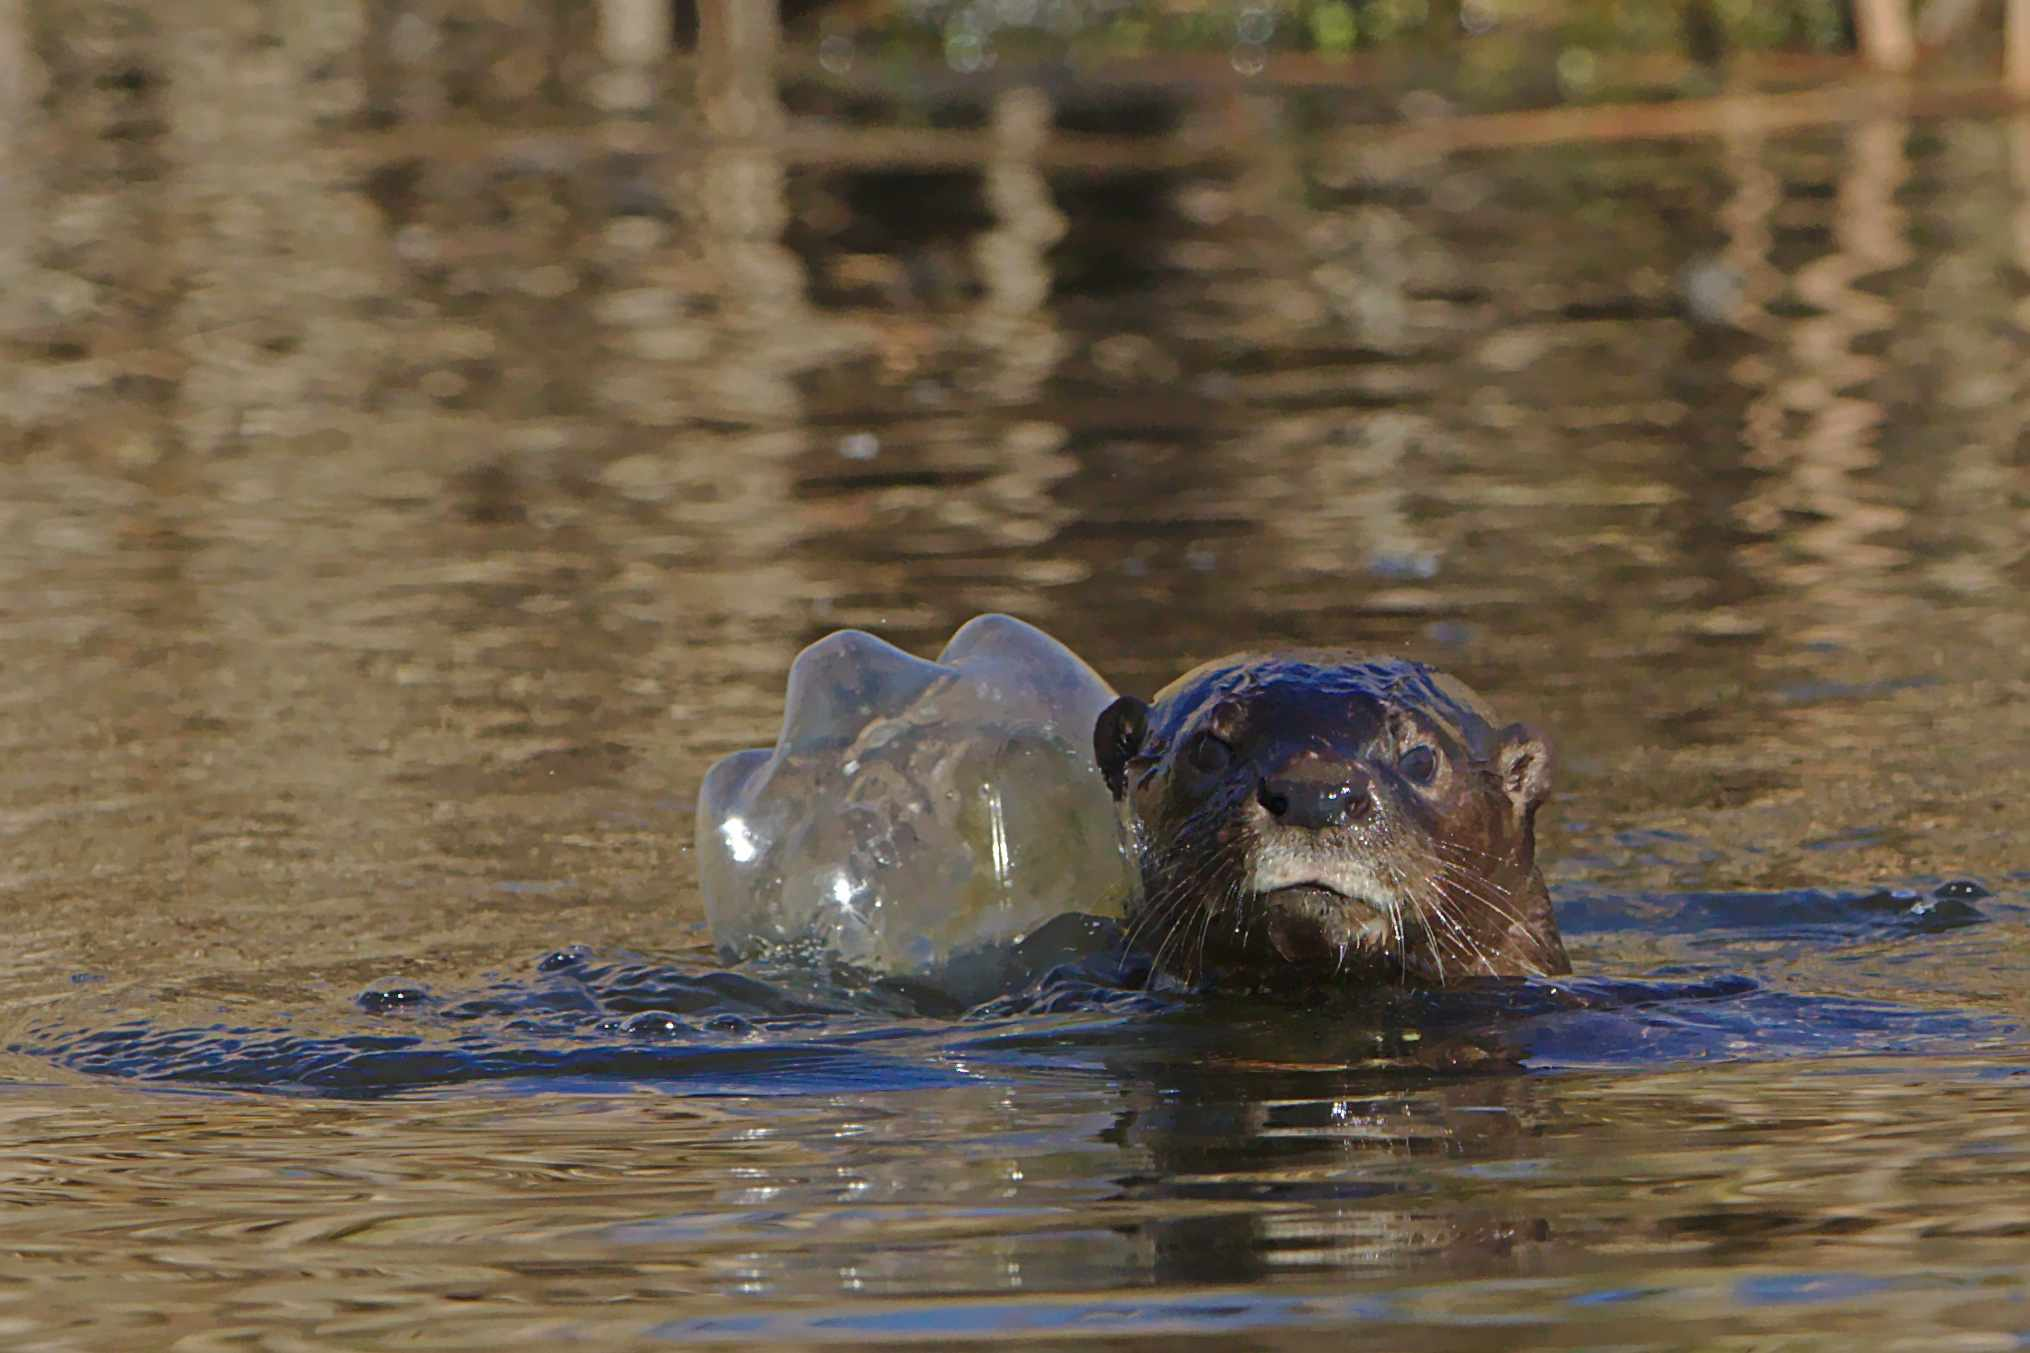 Otter head peeking out of the water, swimming with discarded plastic bottle